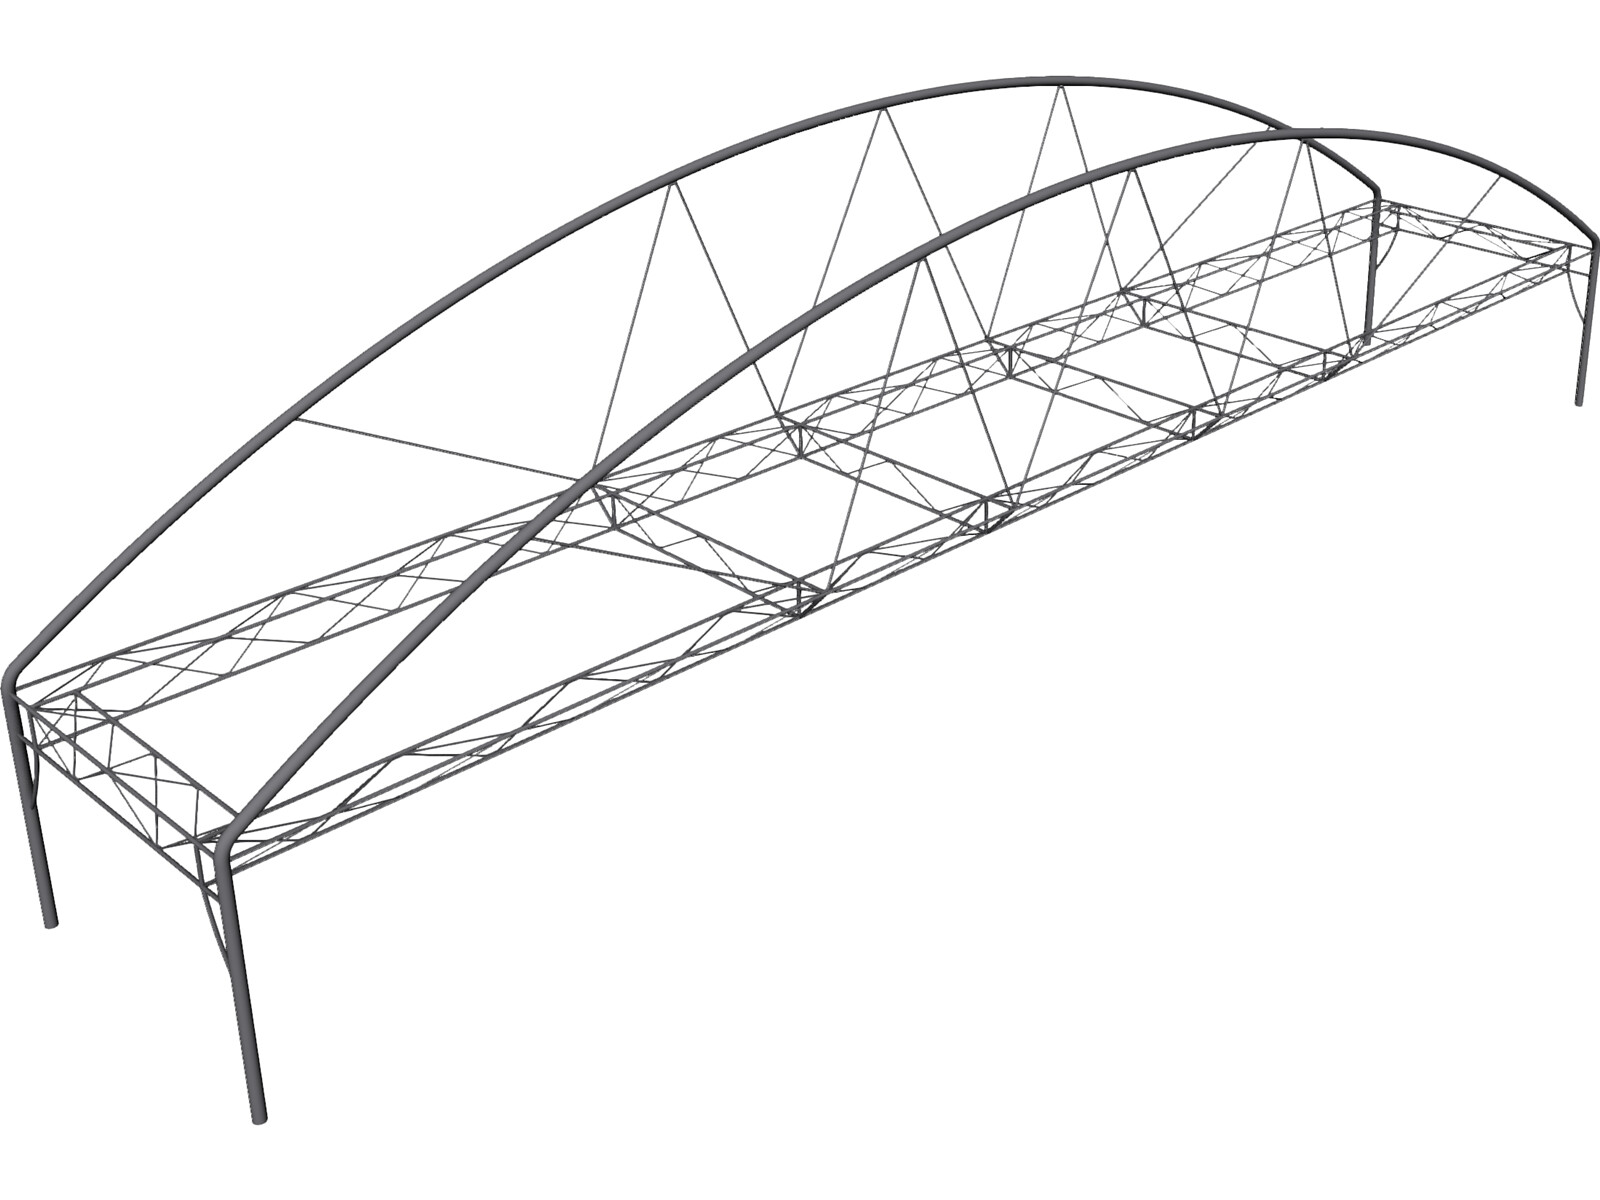 arched fink truss bridge 3d cad model